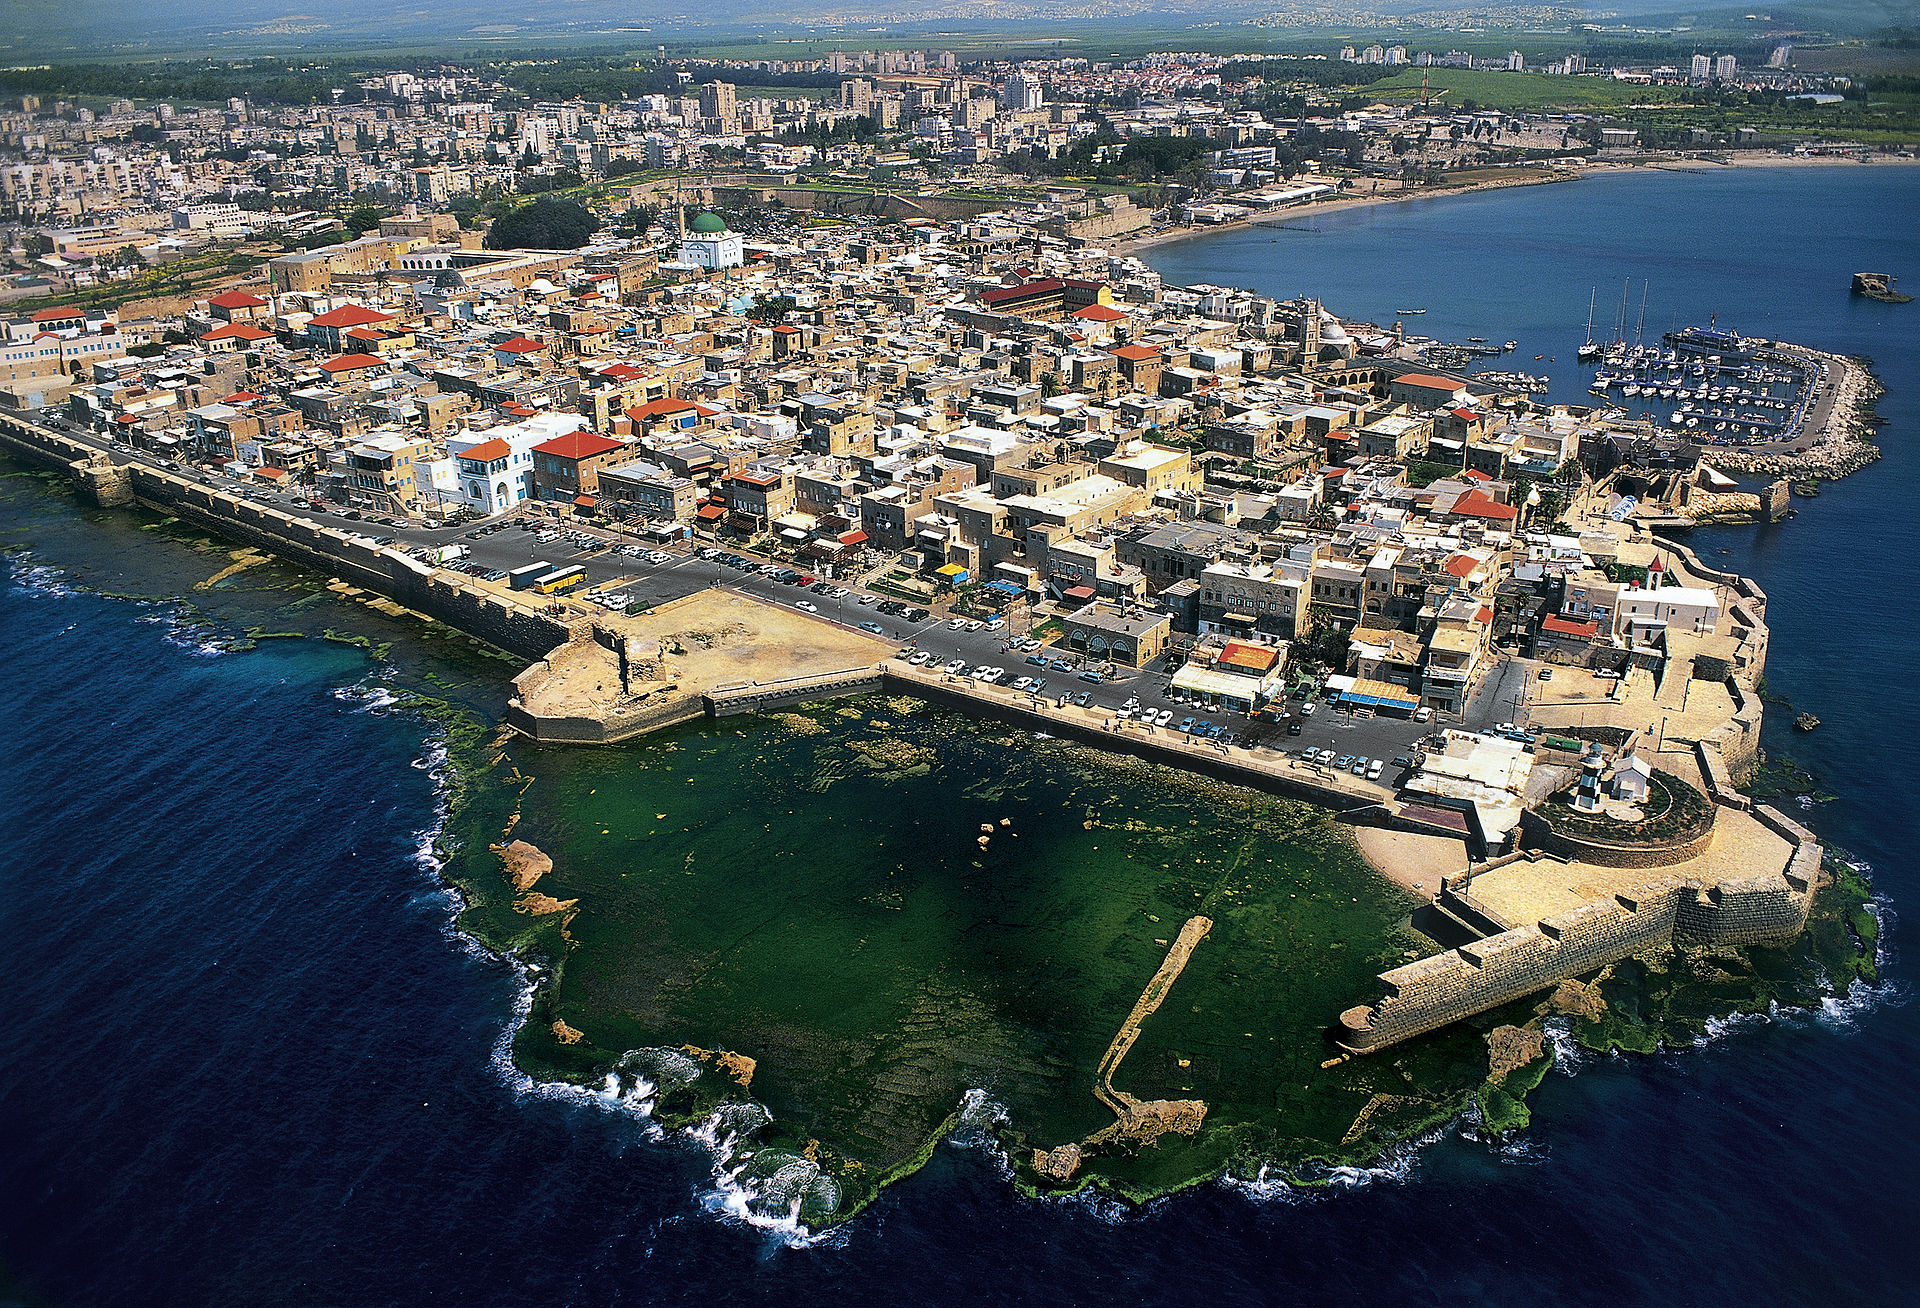 Acre - عكا : Aerial view of Acre (Akka in arabic) looking north